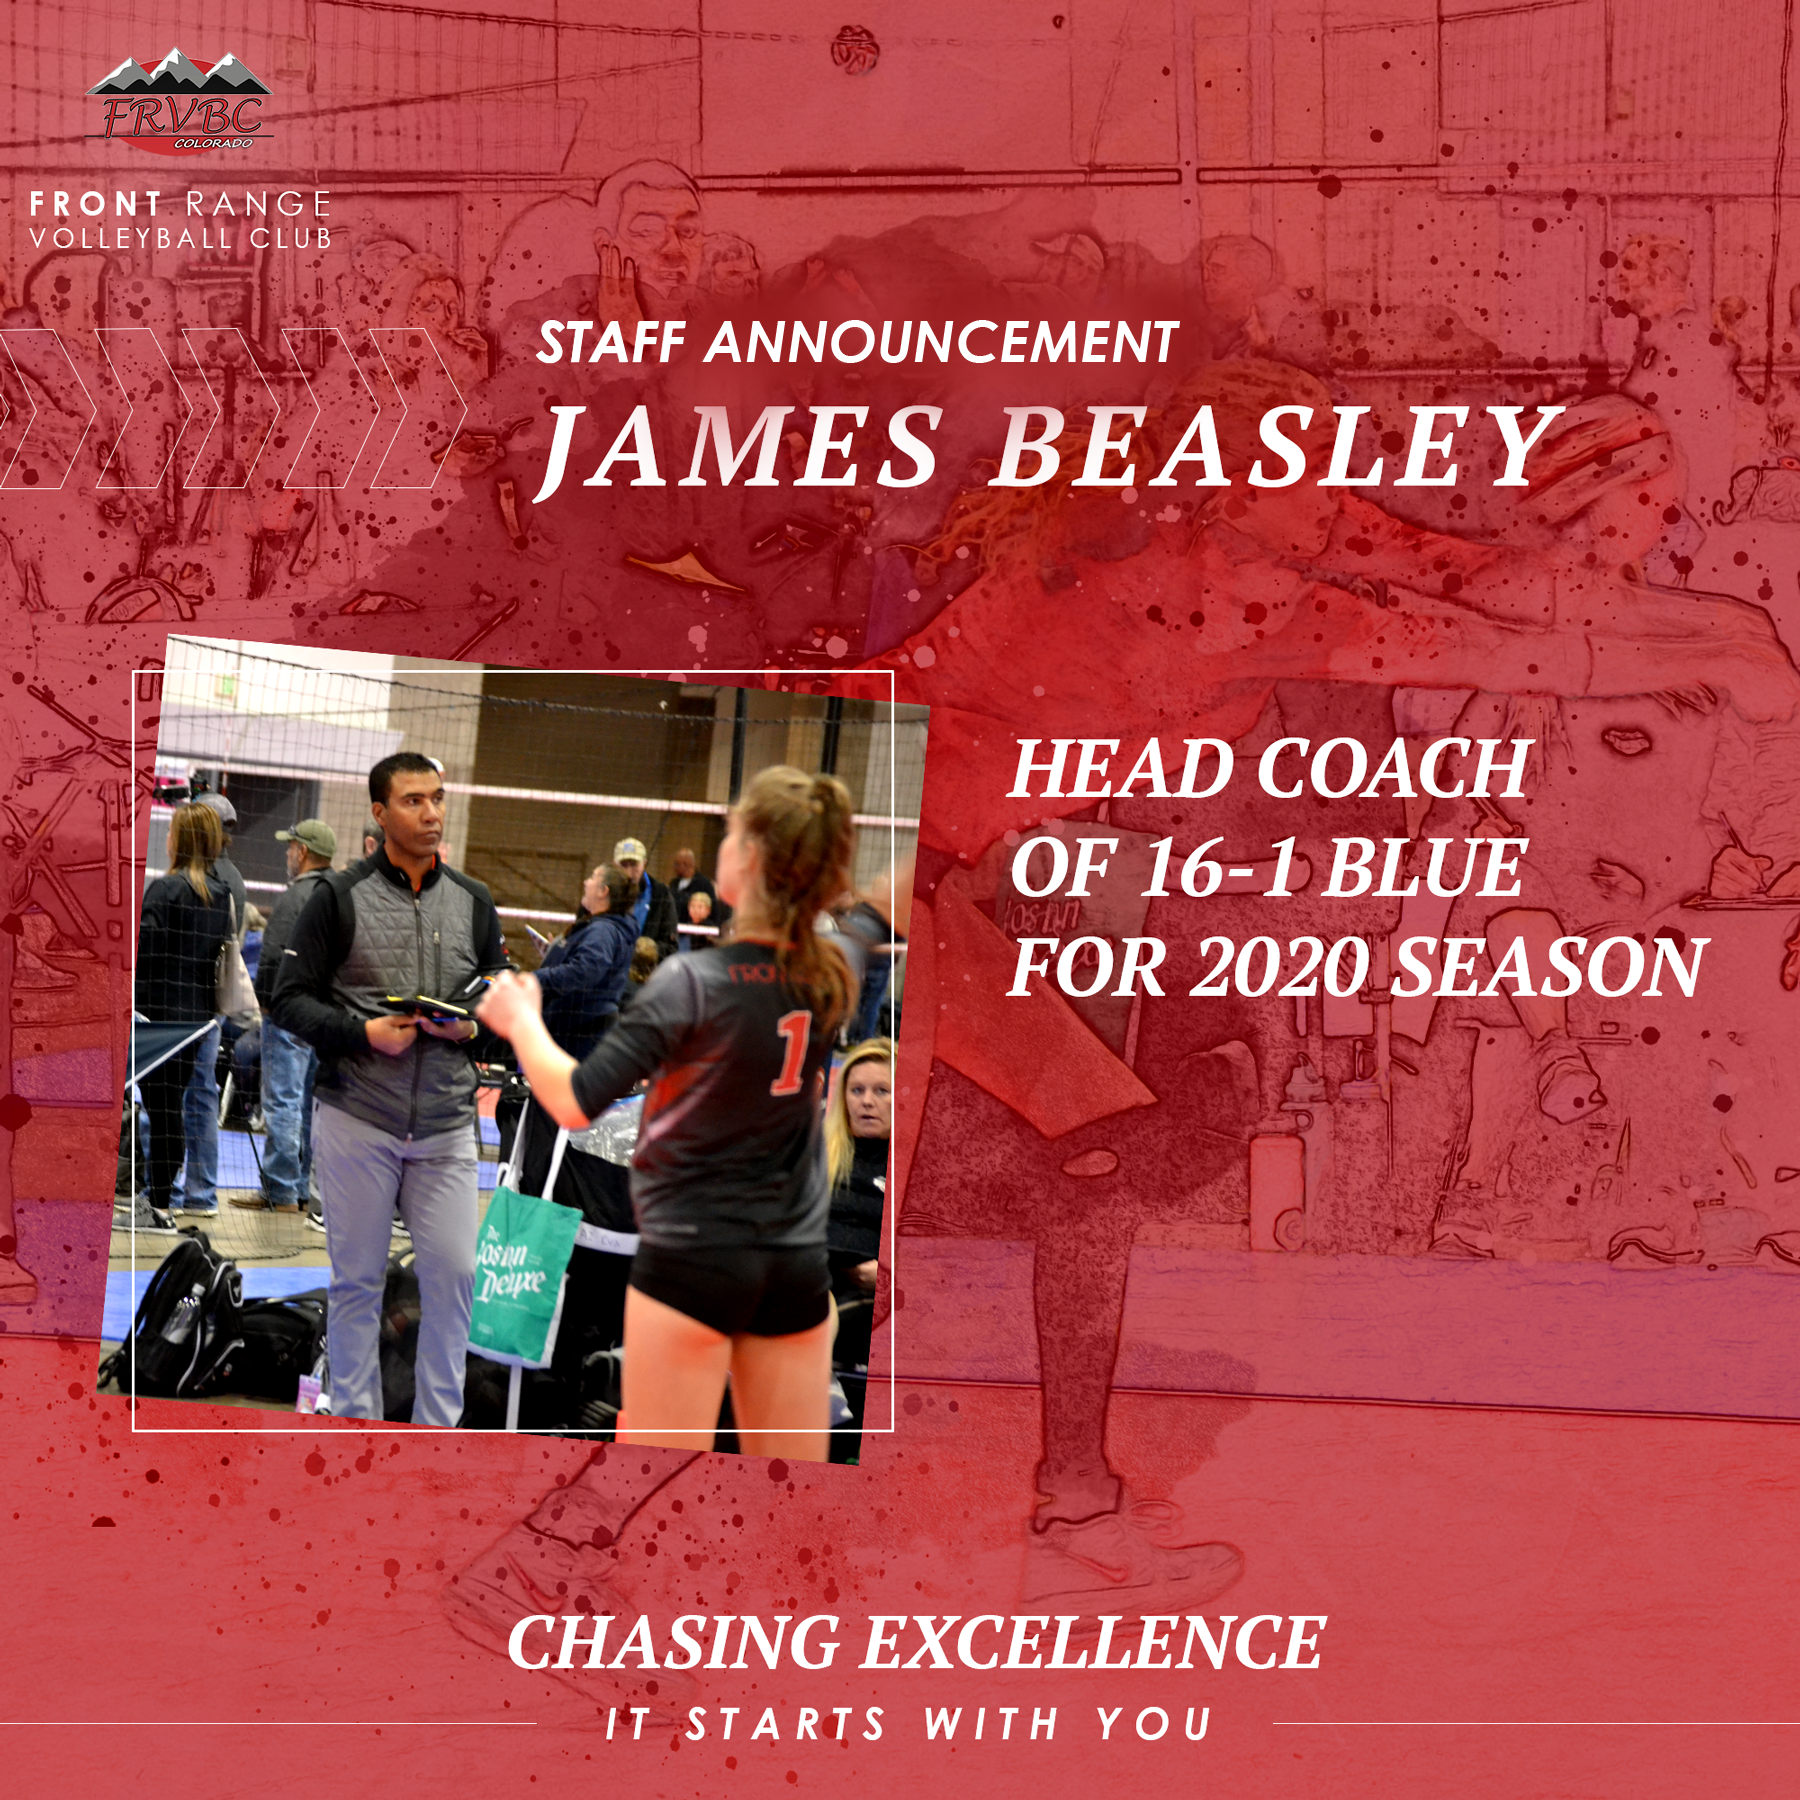 https://frvbc.com/wp-content/uploads/2019/06/JamesBeasley-CoachPost.png